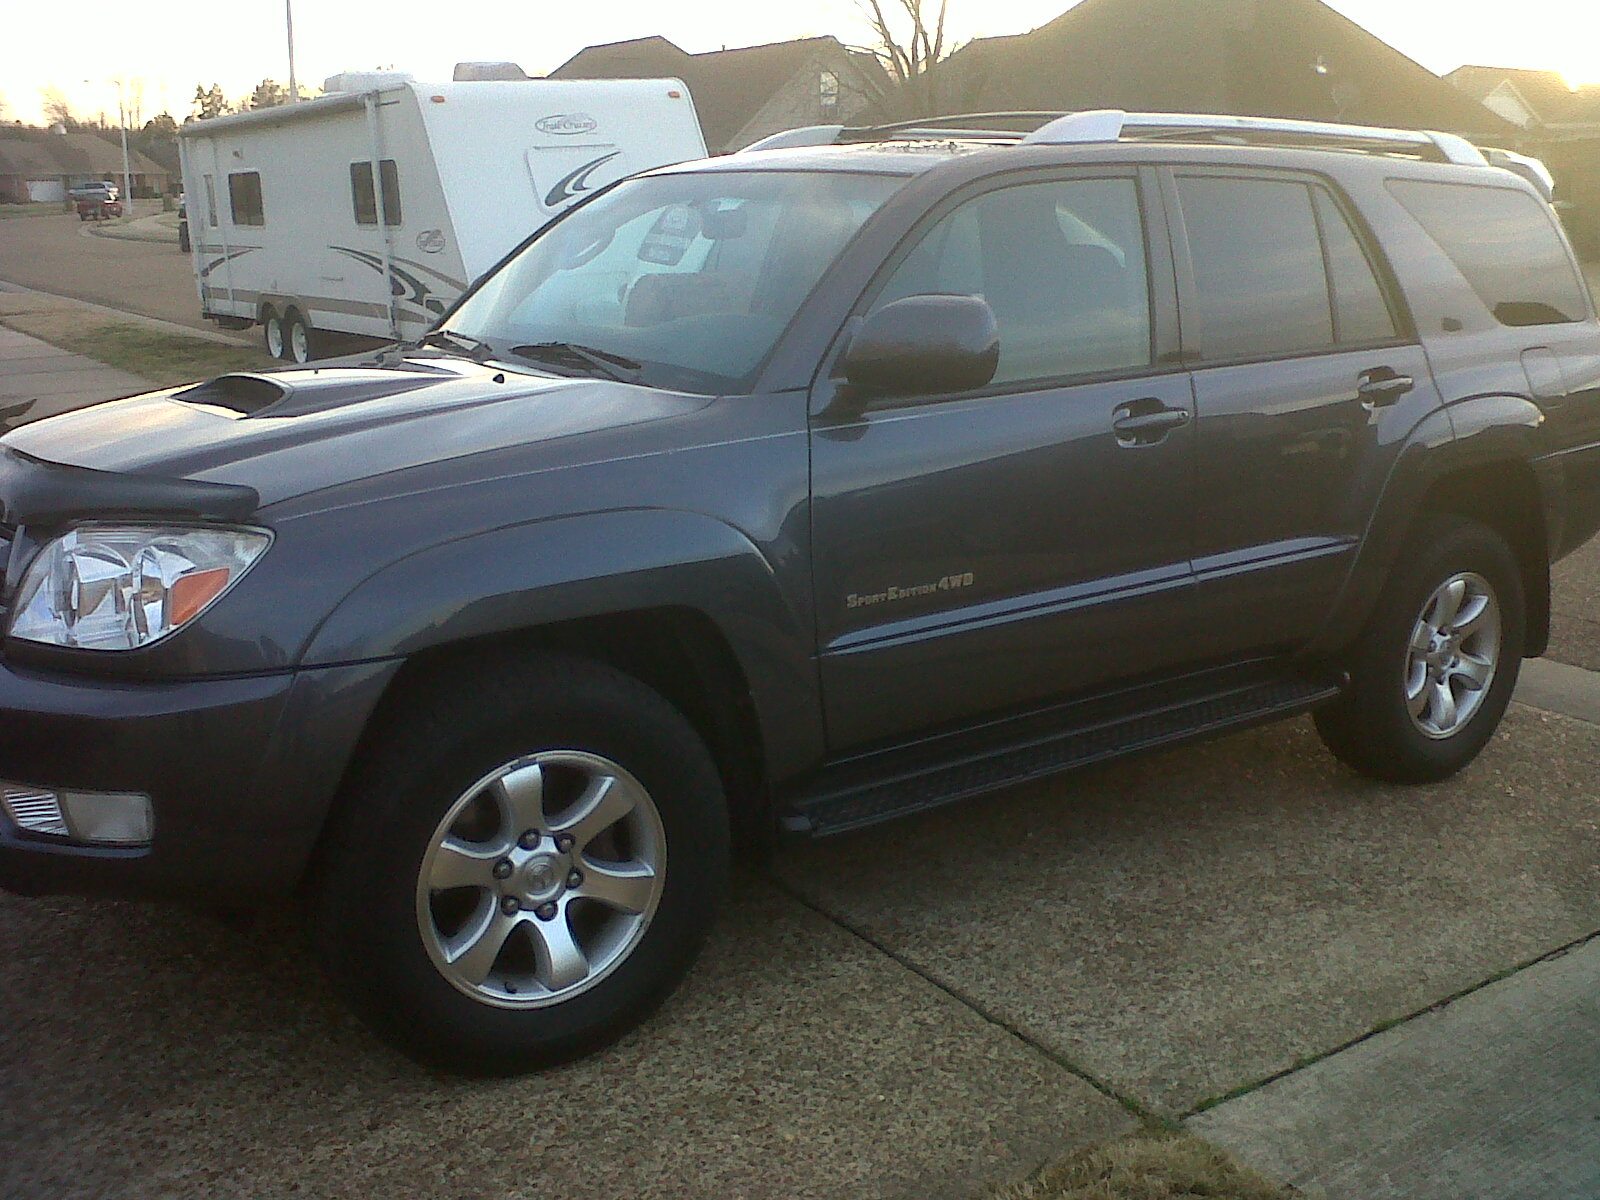 Picture of 2005 toyota 4runner sport edition v6 4wd exterior